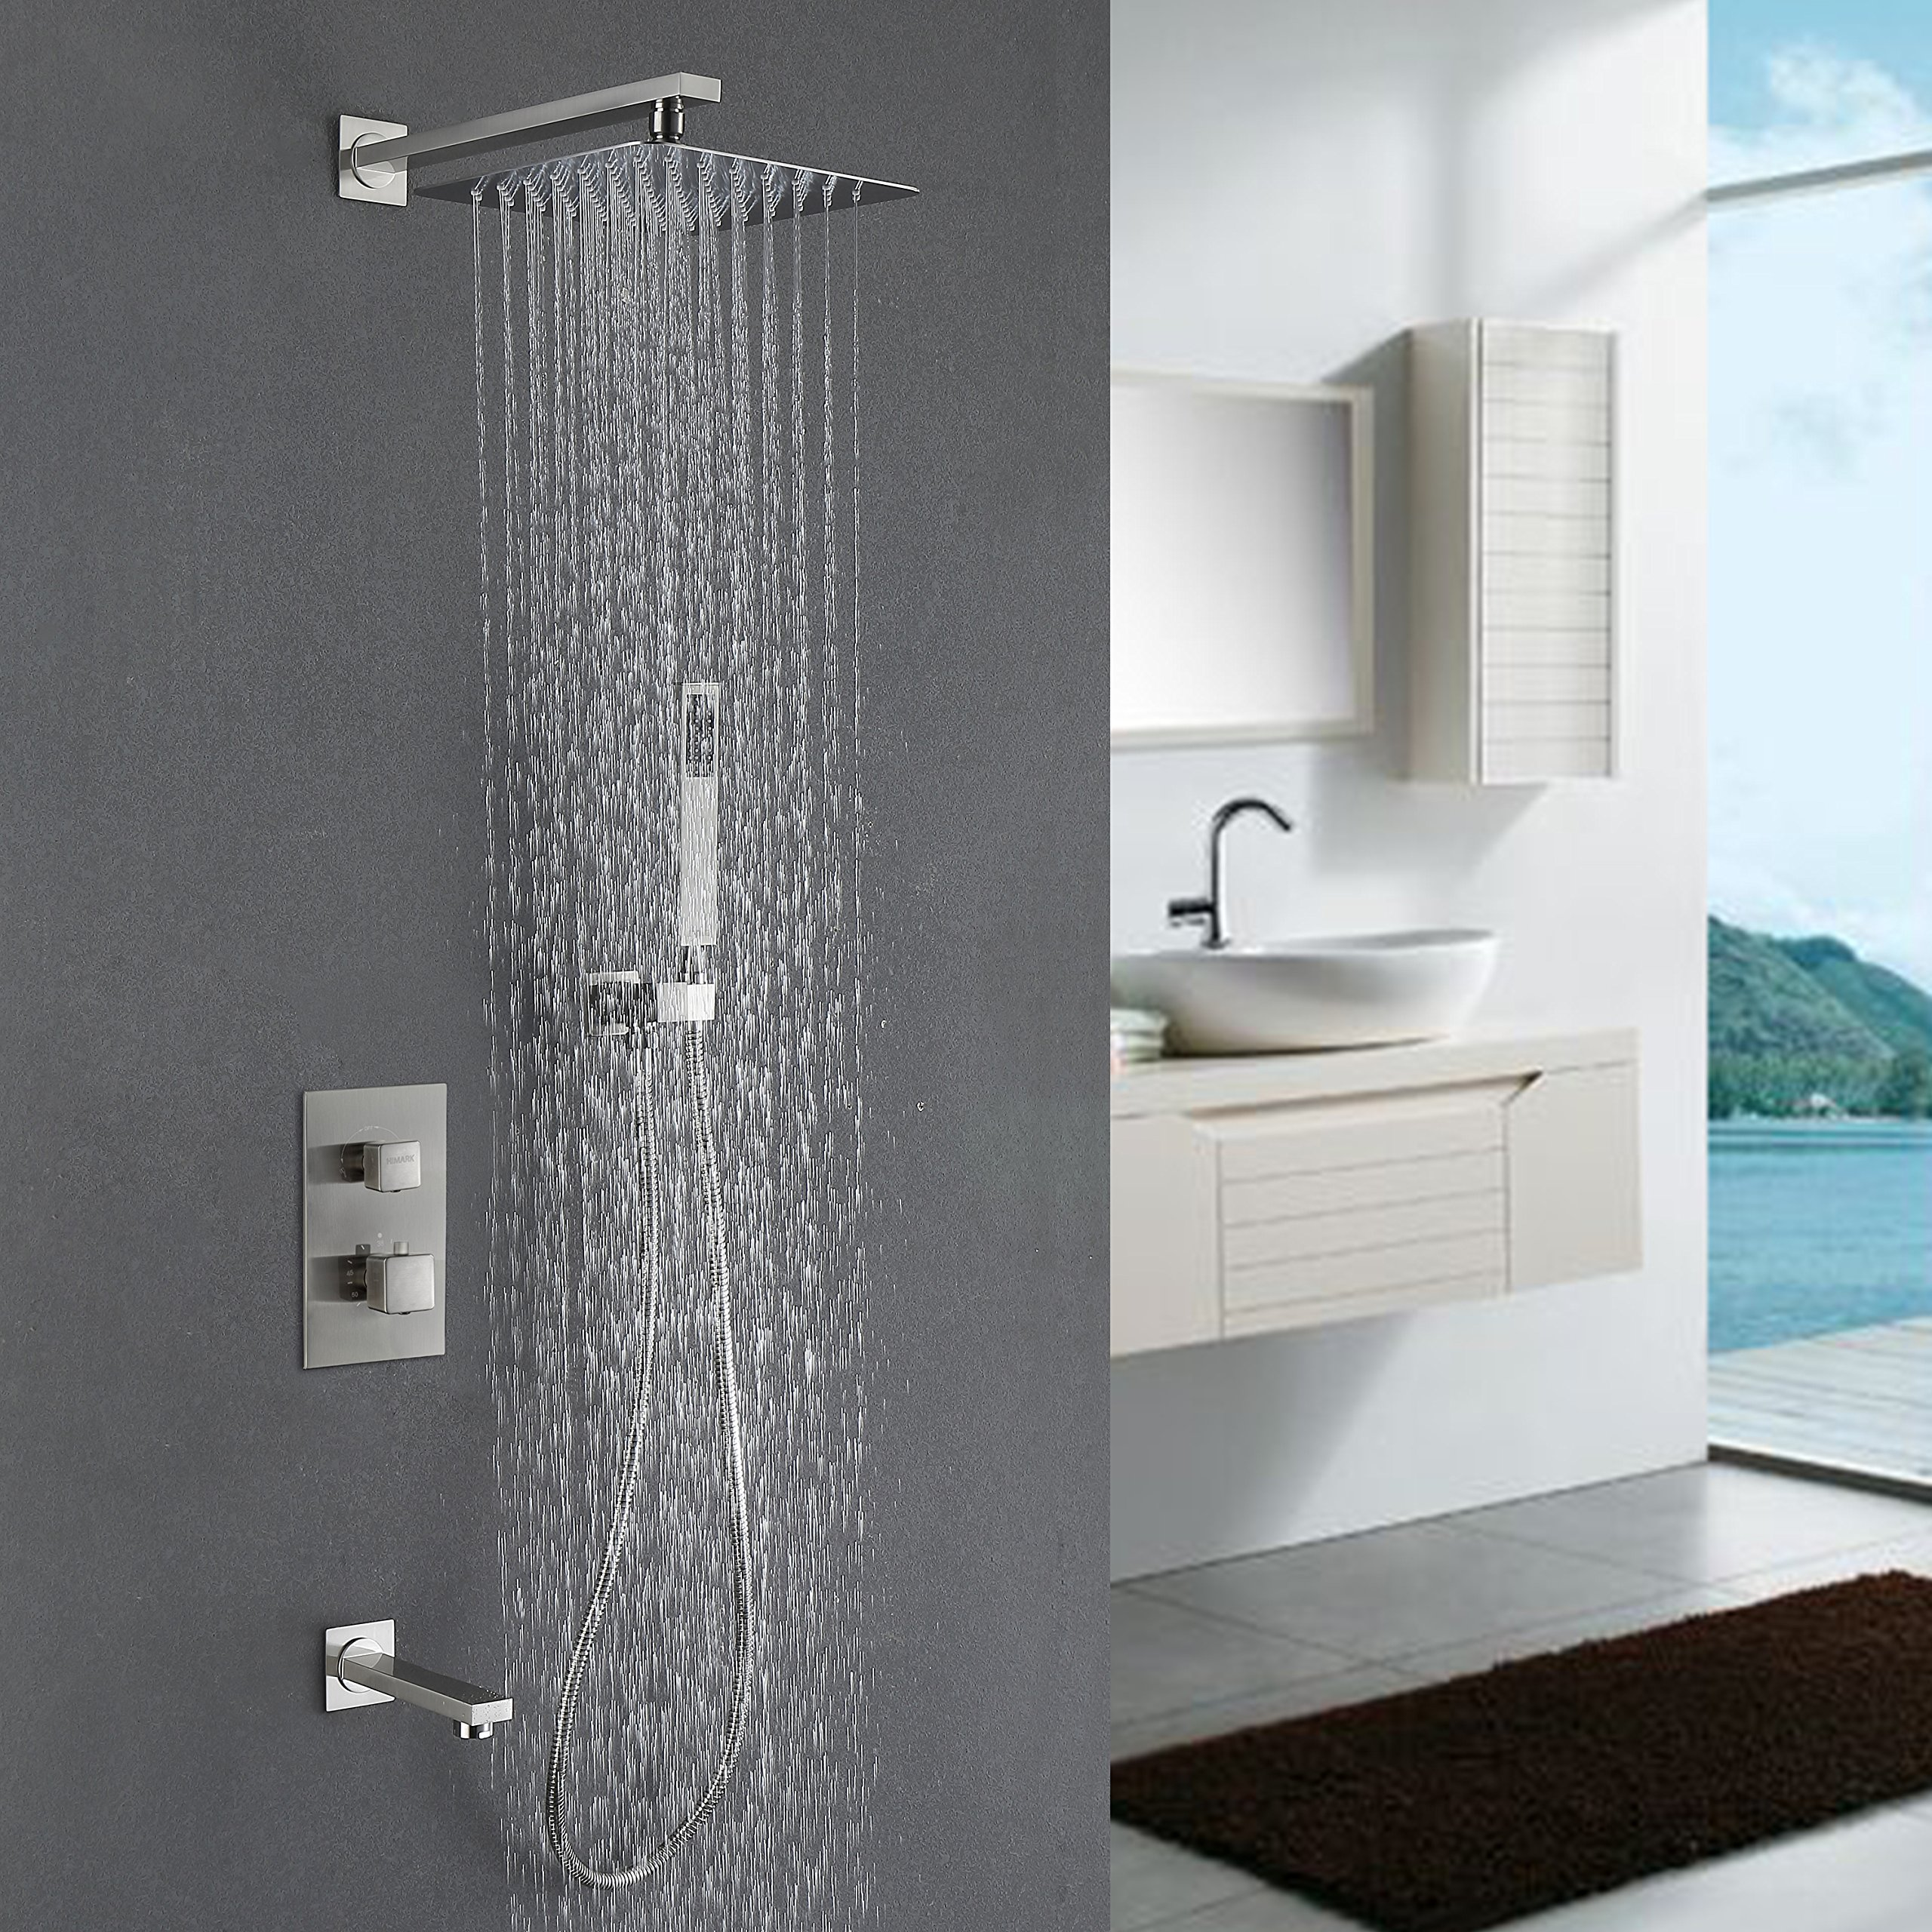 HIMARK Luxury Rain Shower Systems Wall Mounted Shower Combo Set with High Pressure 10 Inch Square Rain Shower Head and Handheld thermostatic Tub Shower Faucet Set Brushed Nickel